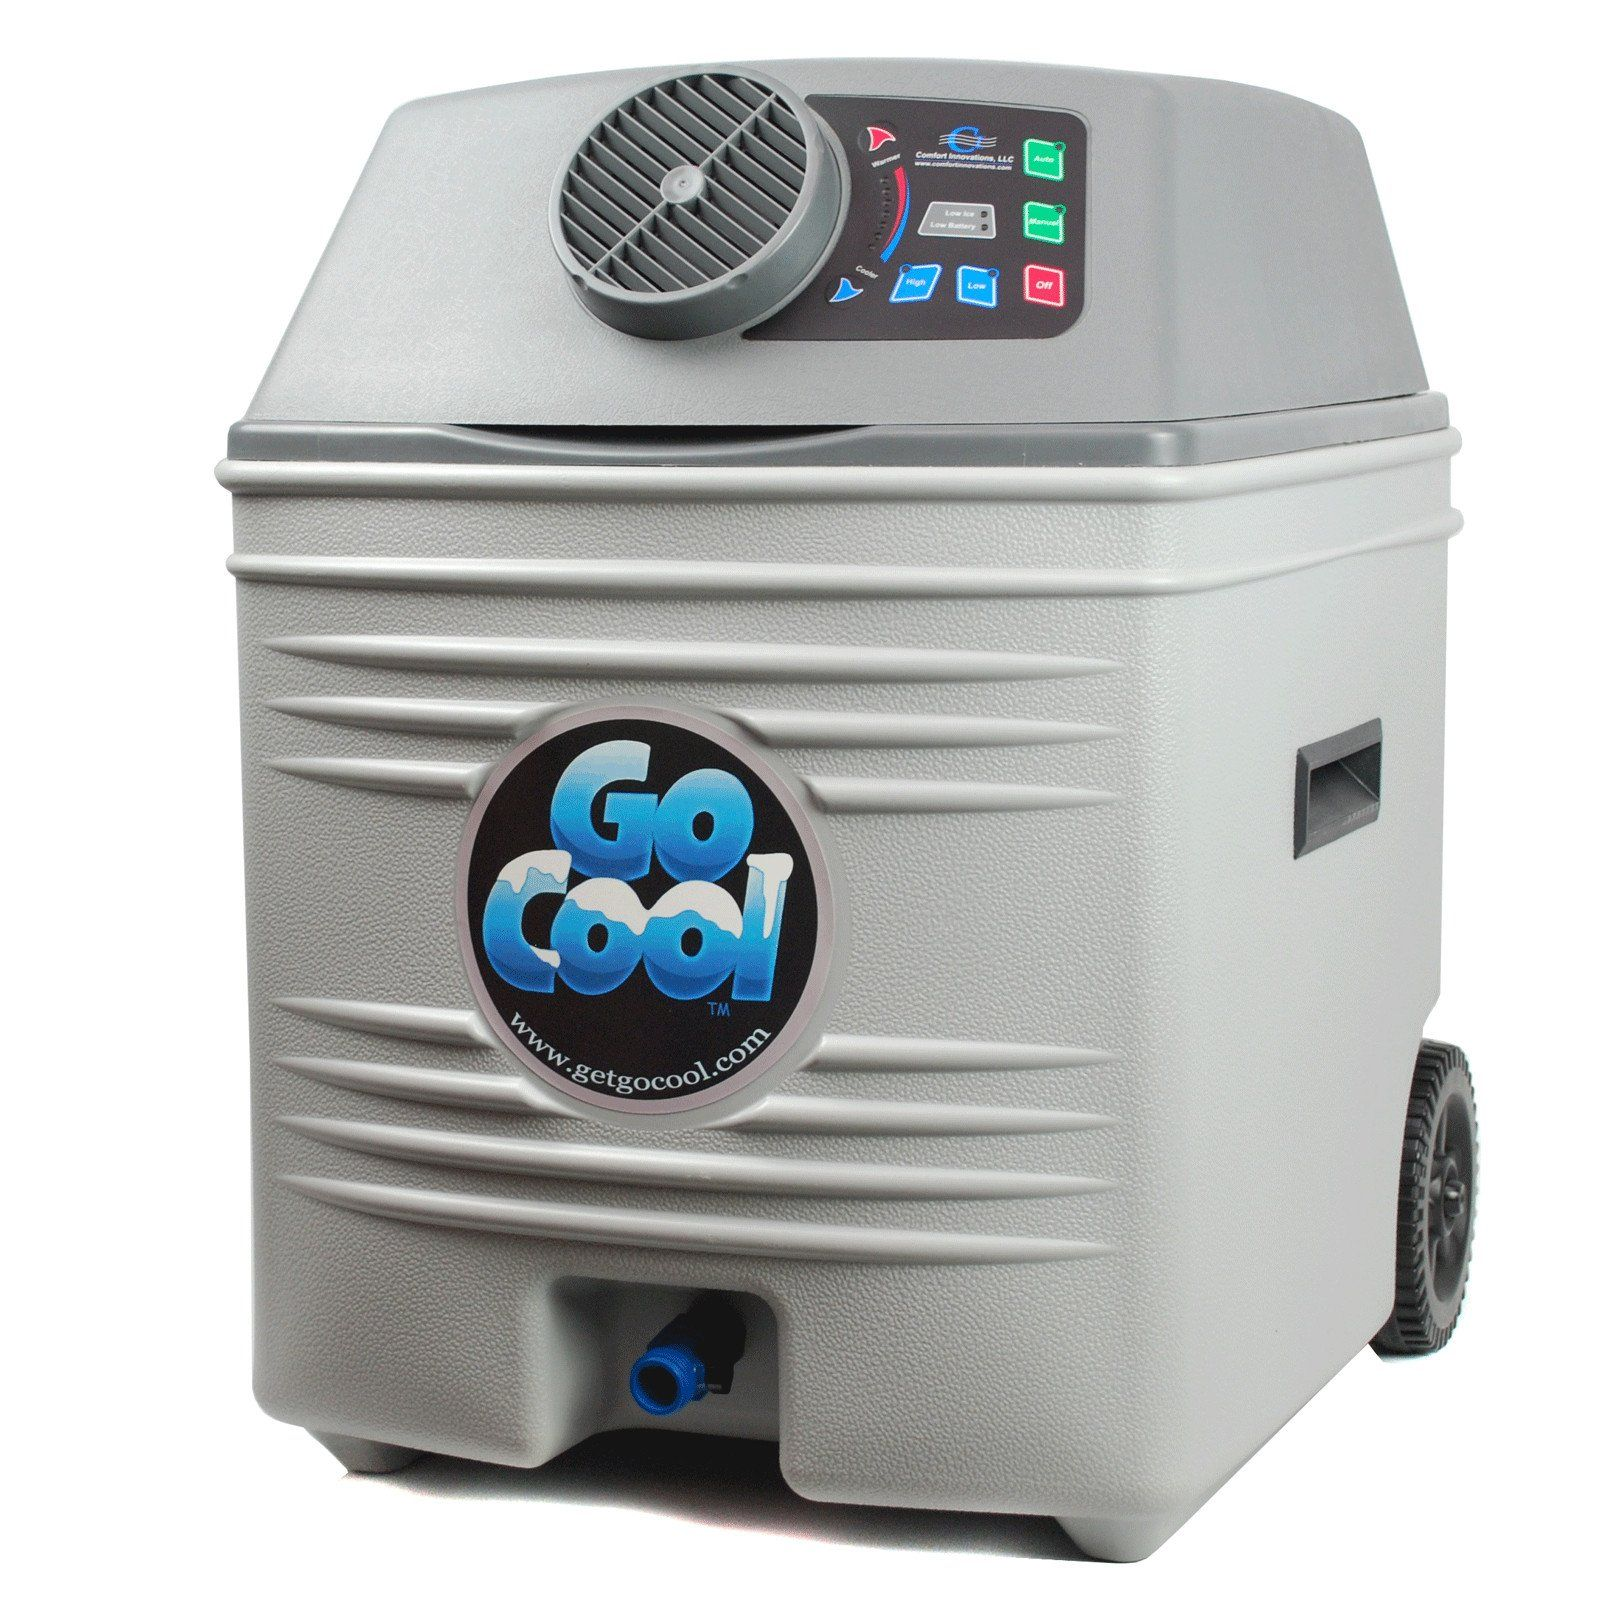 Go Cool Provides All Of The Benefits Of Portable Air Conditioners